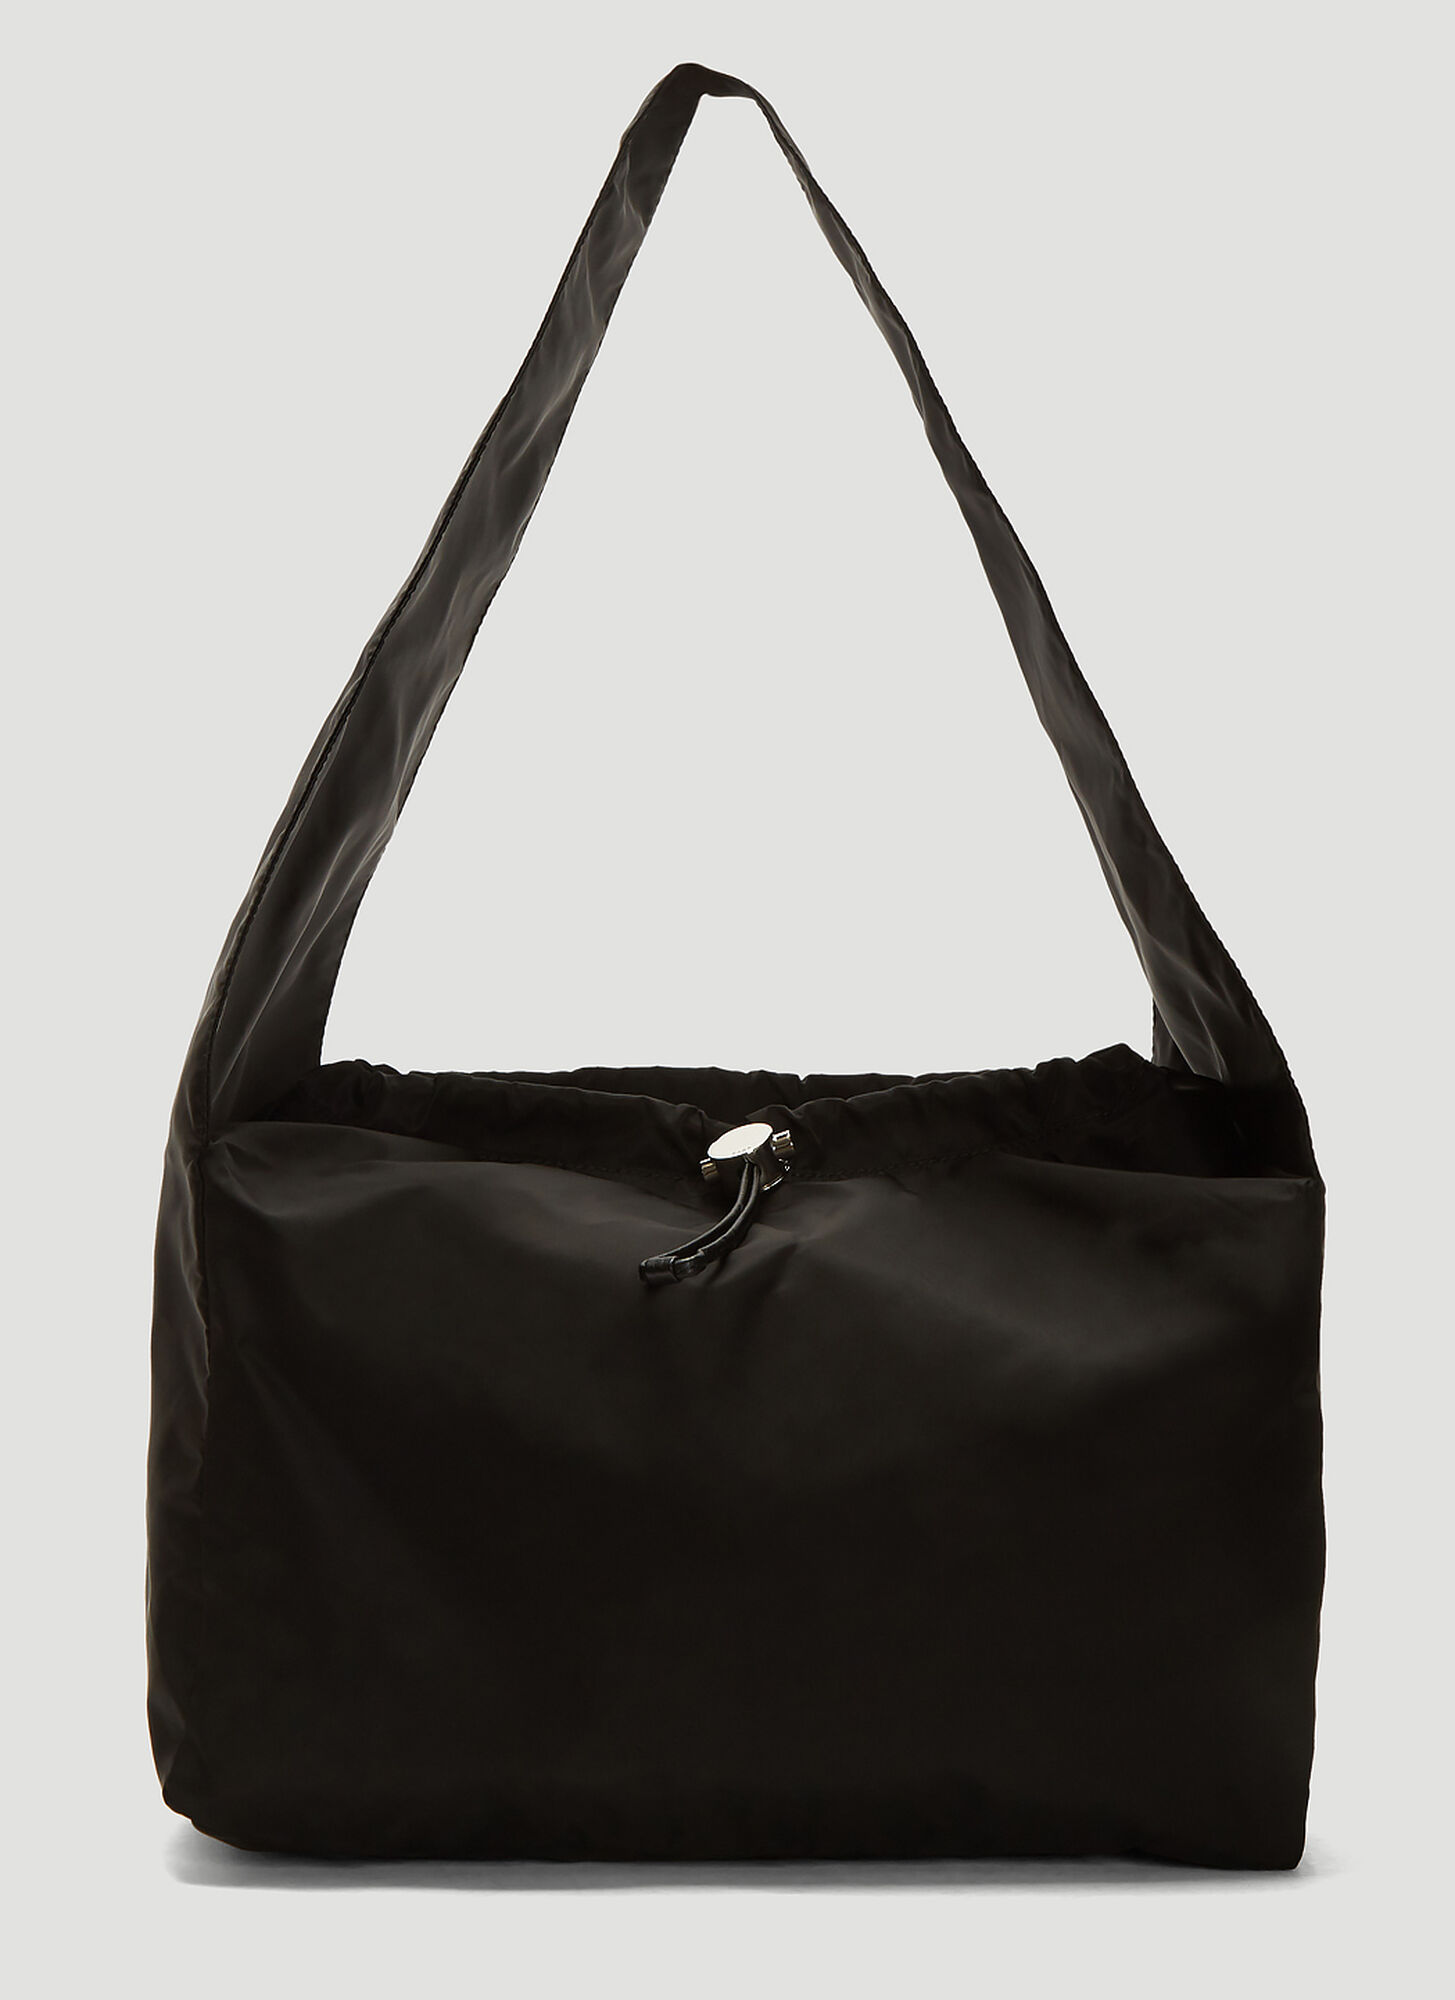 Kara Large Cloud Bag in Black